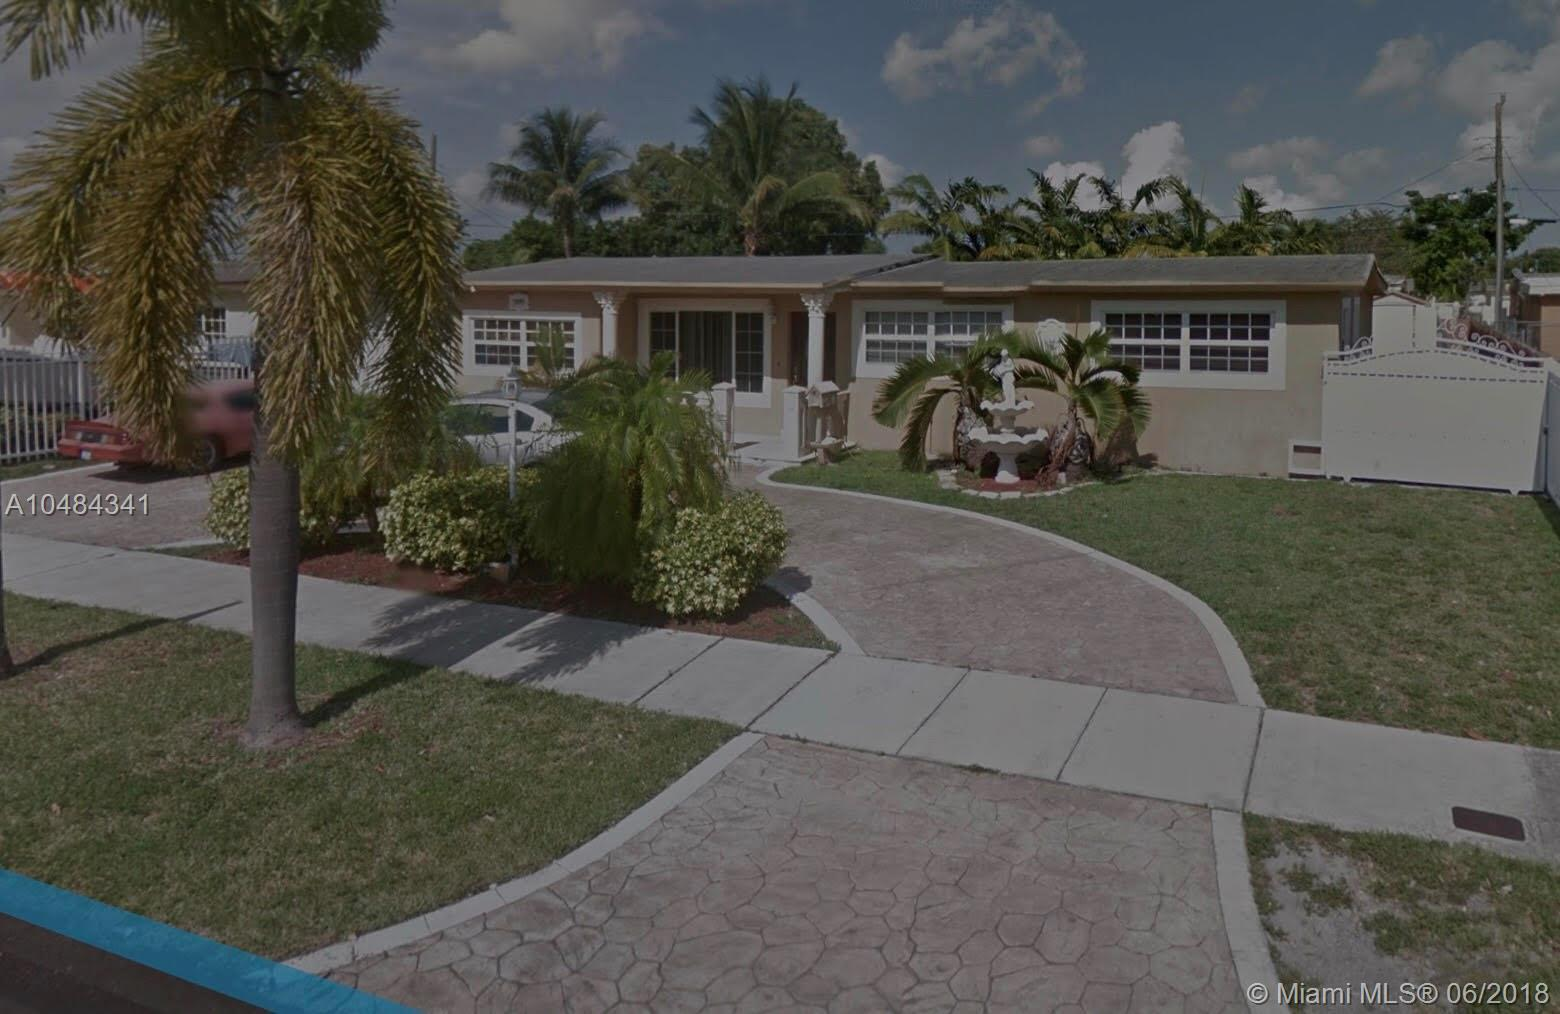 5495 W 14th Ln, Hialeah FL, 33012